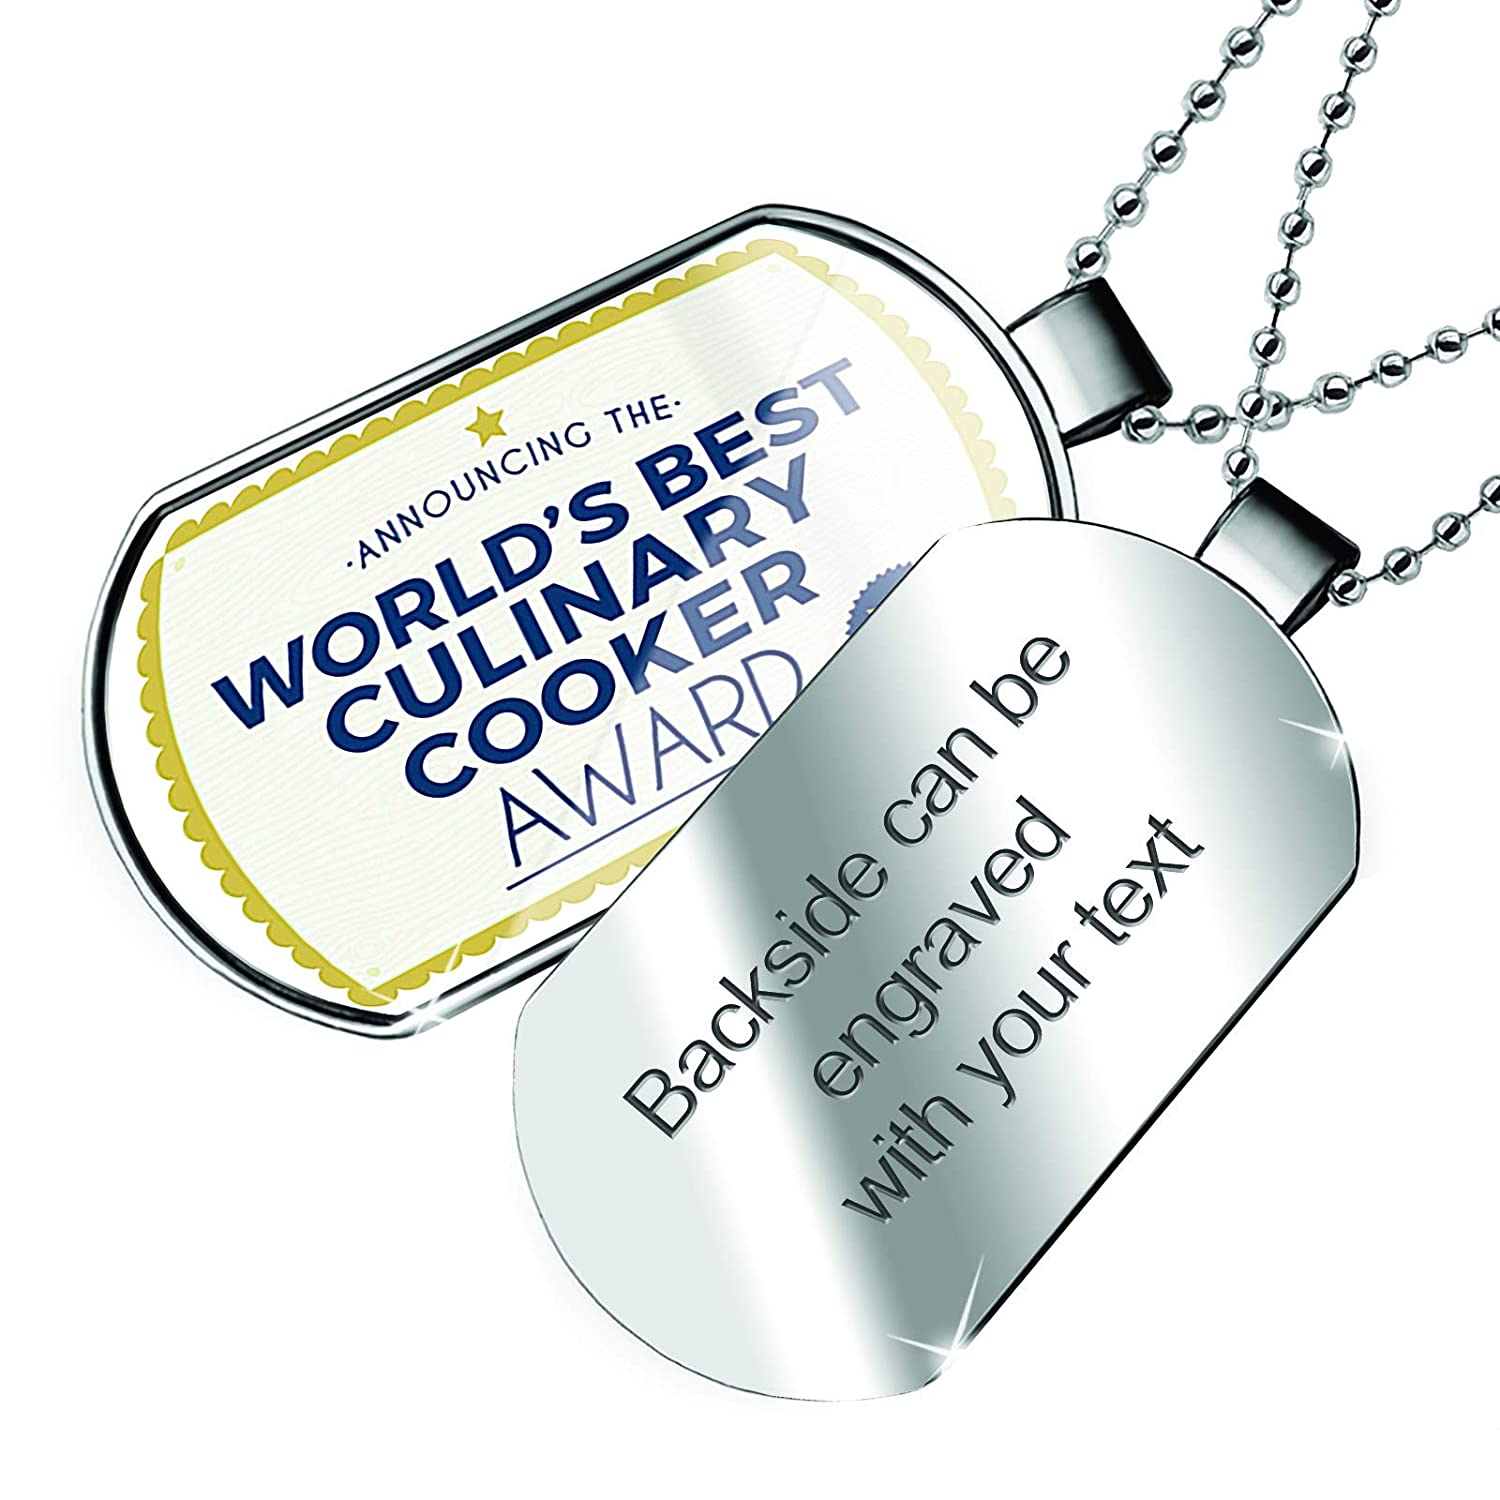 NEONBLOND Personalized Name Engraved Worlds Best Culinary Cooker Certificate Award Dogtag Necklace